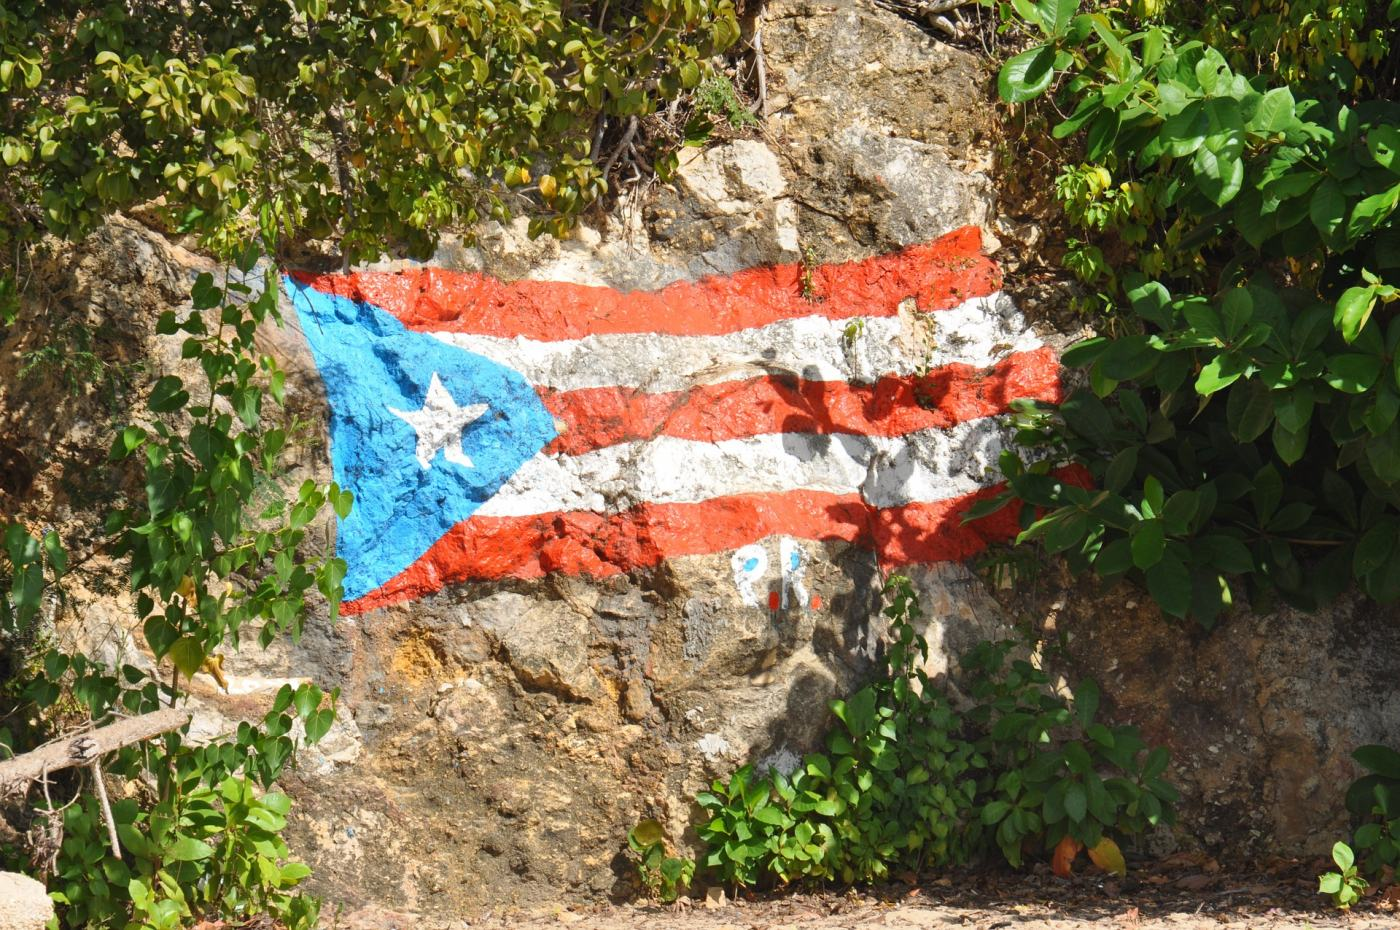 Puerto Rico Travel Guide: Visiting Puerto Rico After Hurricane Maria